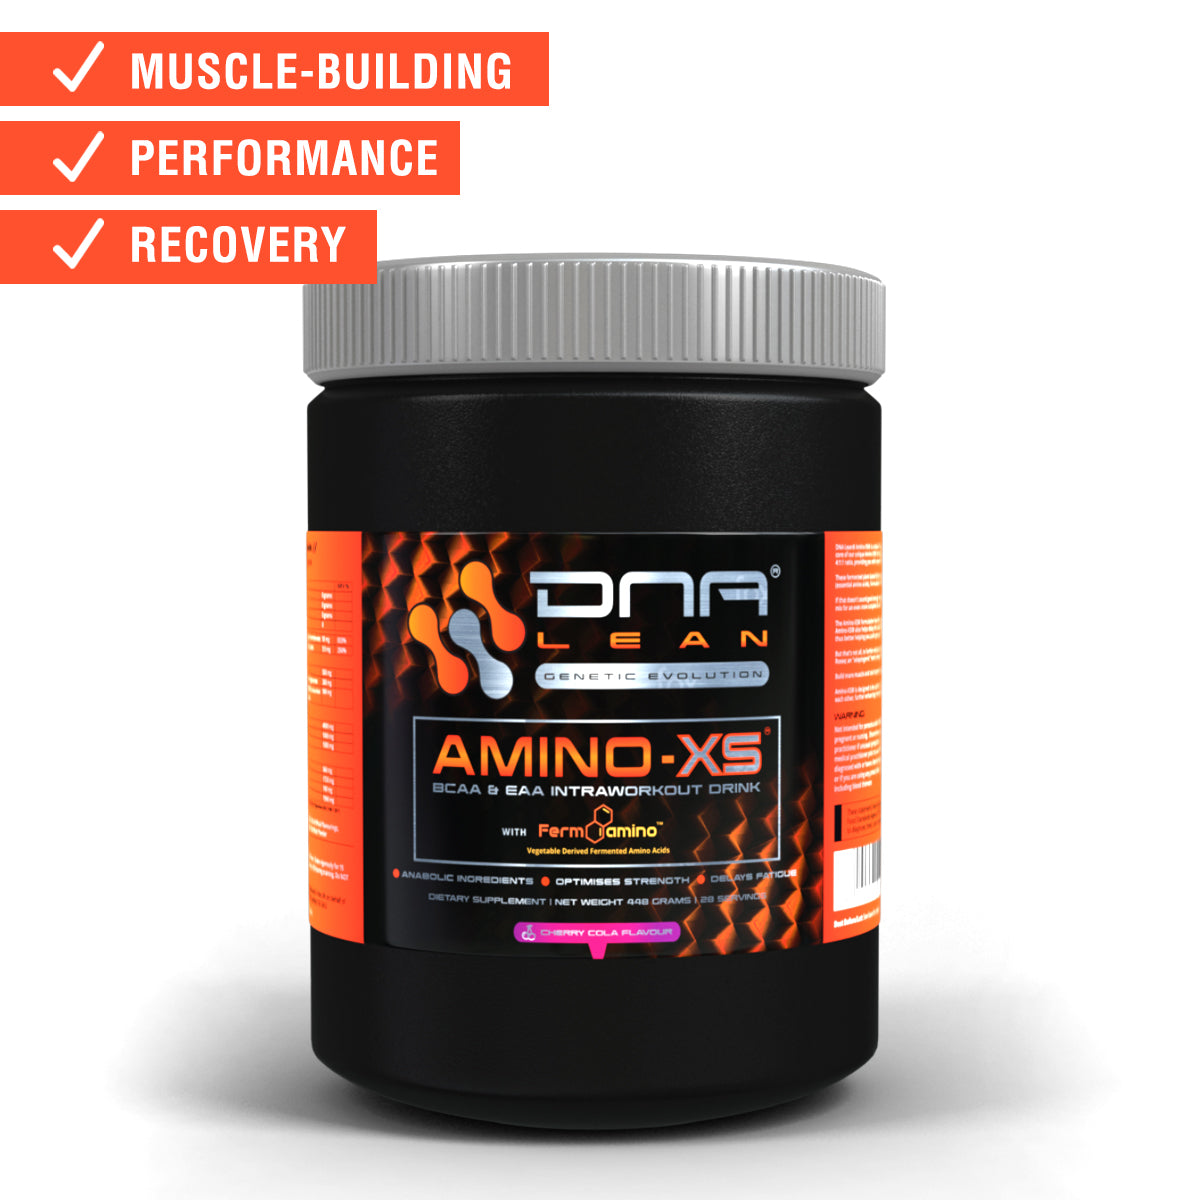 Amino-XS BCAA/EAA and more..